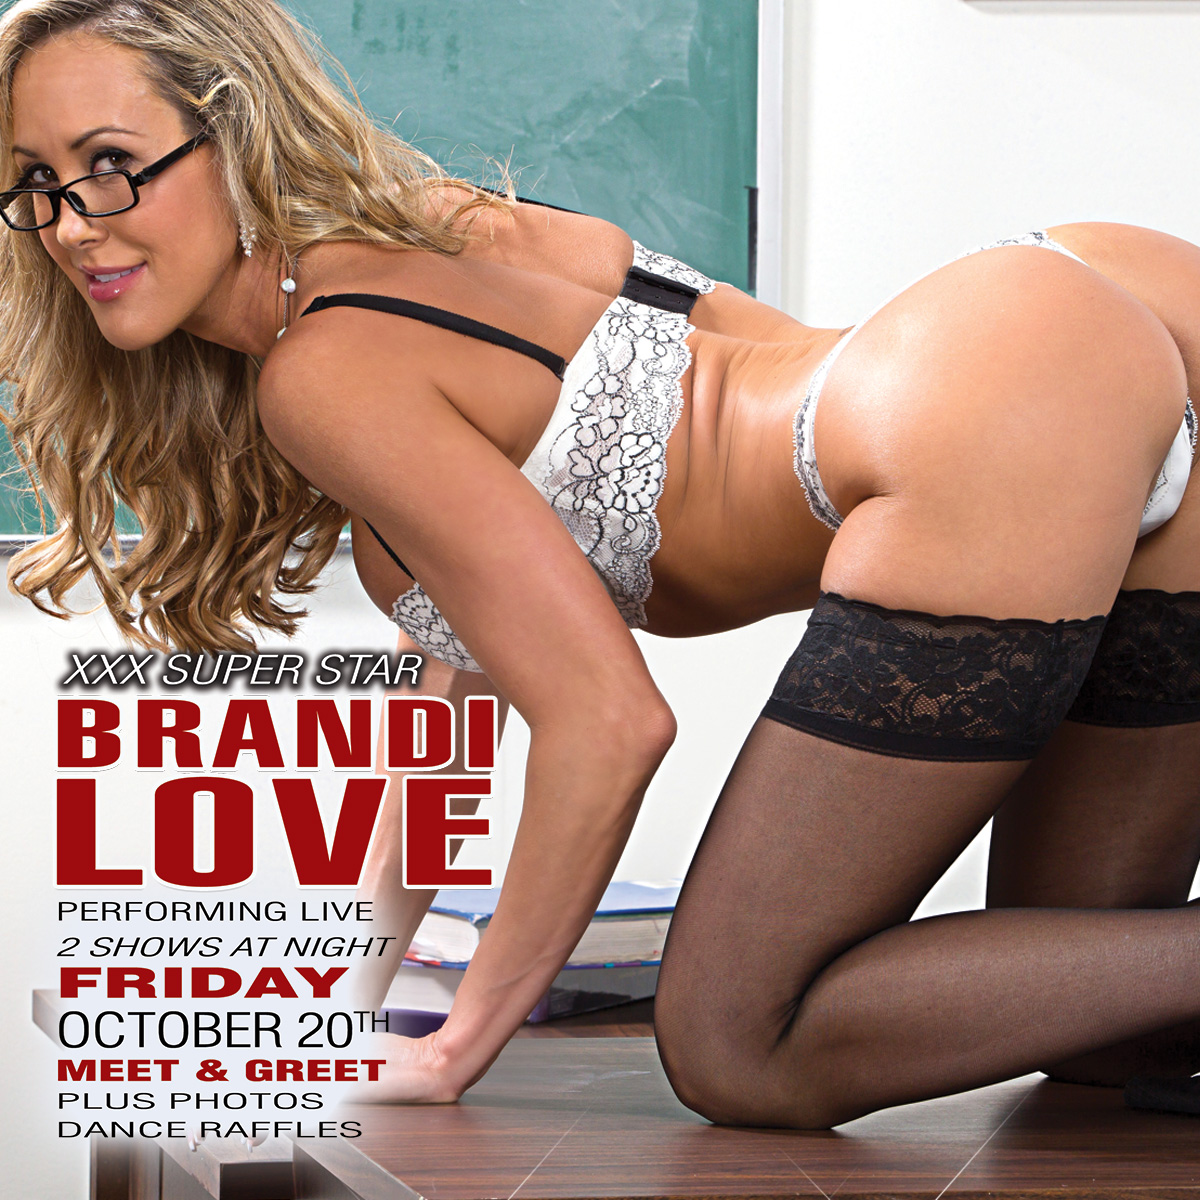 Brandi Love Oct 20th | Luckys Cabaret Strip Club Connecticut